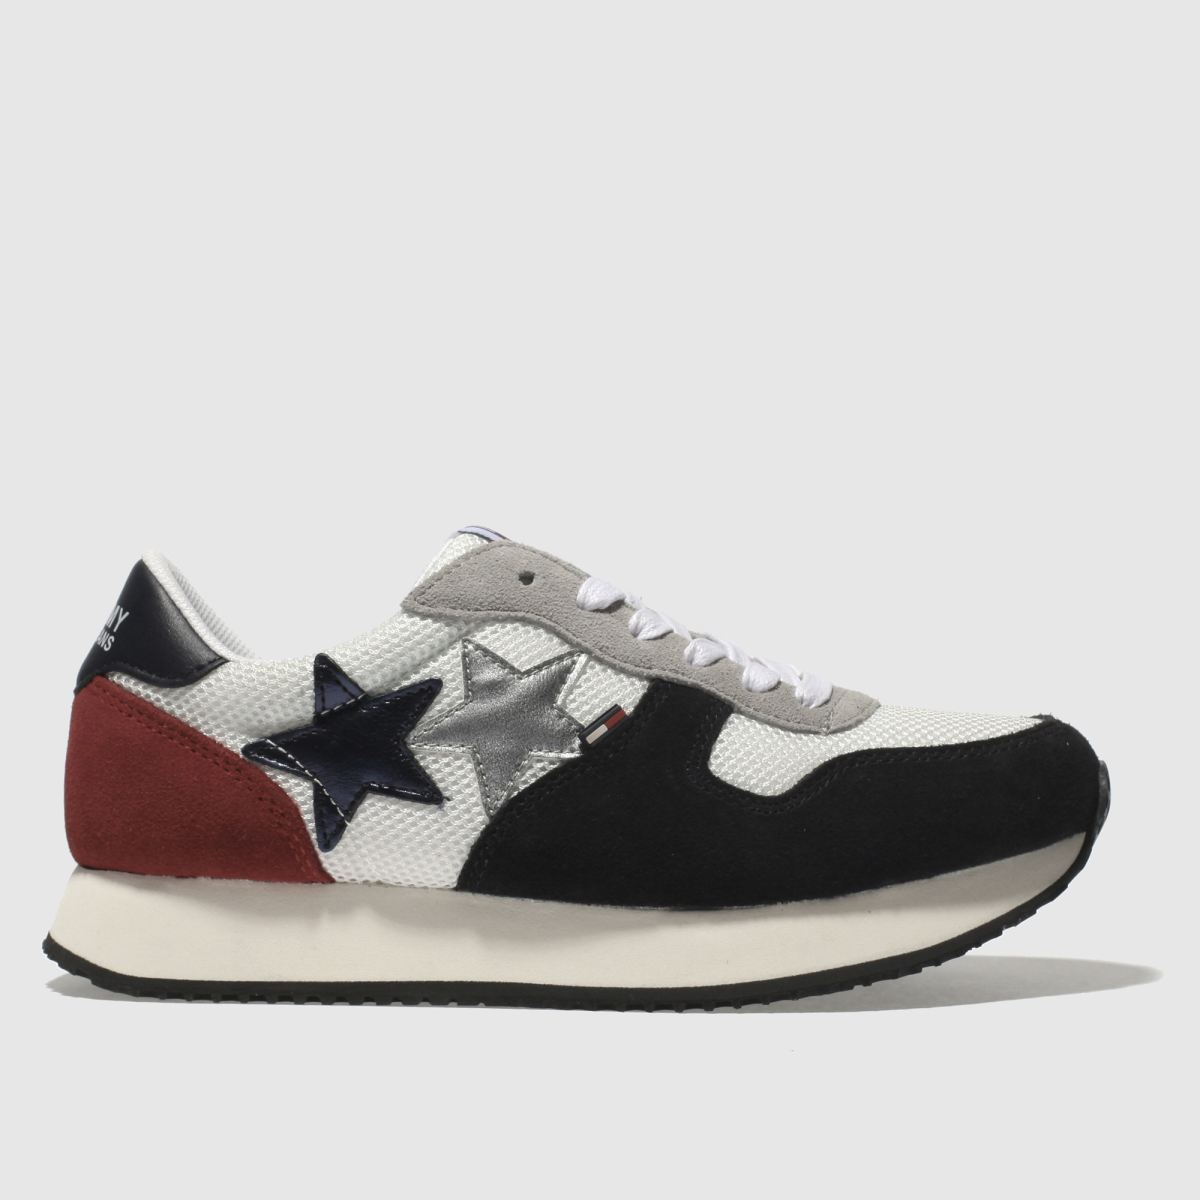 Tommy Hilfiger White & Navy Tj Star Sneaker Trainers